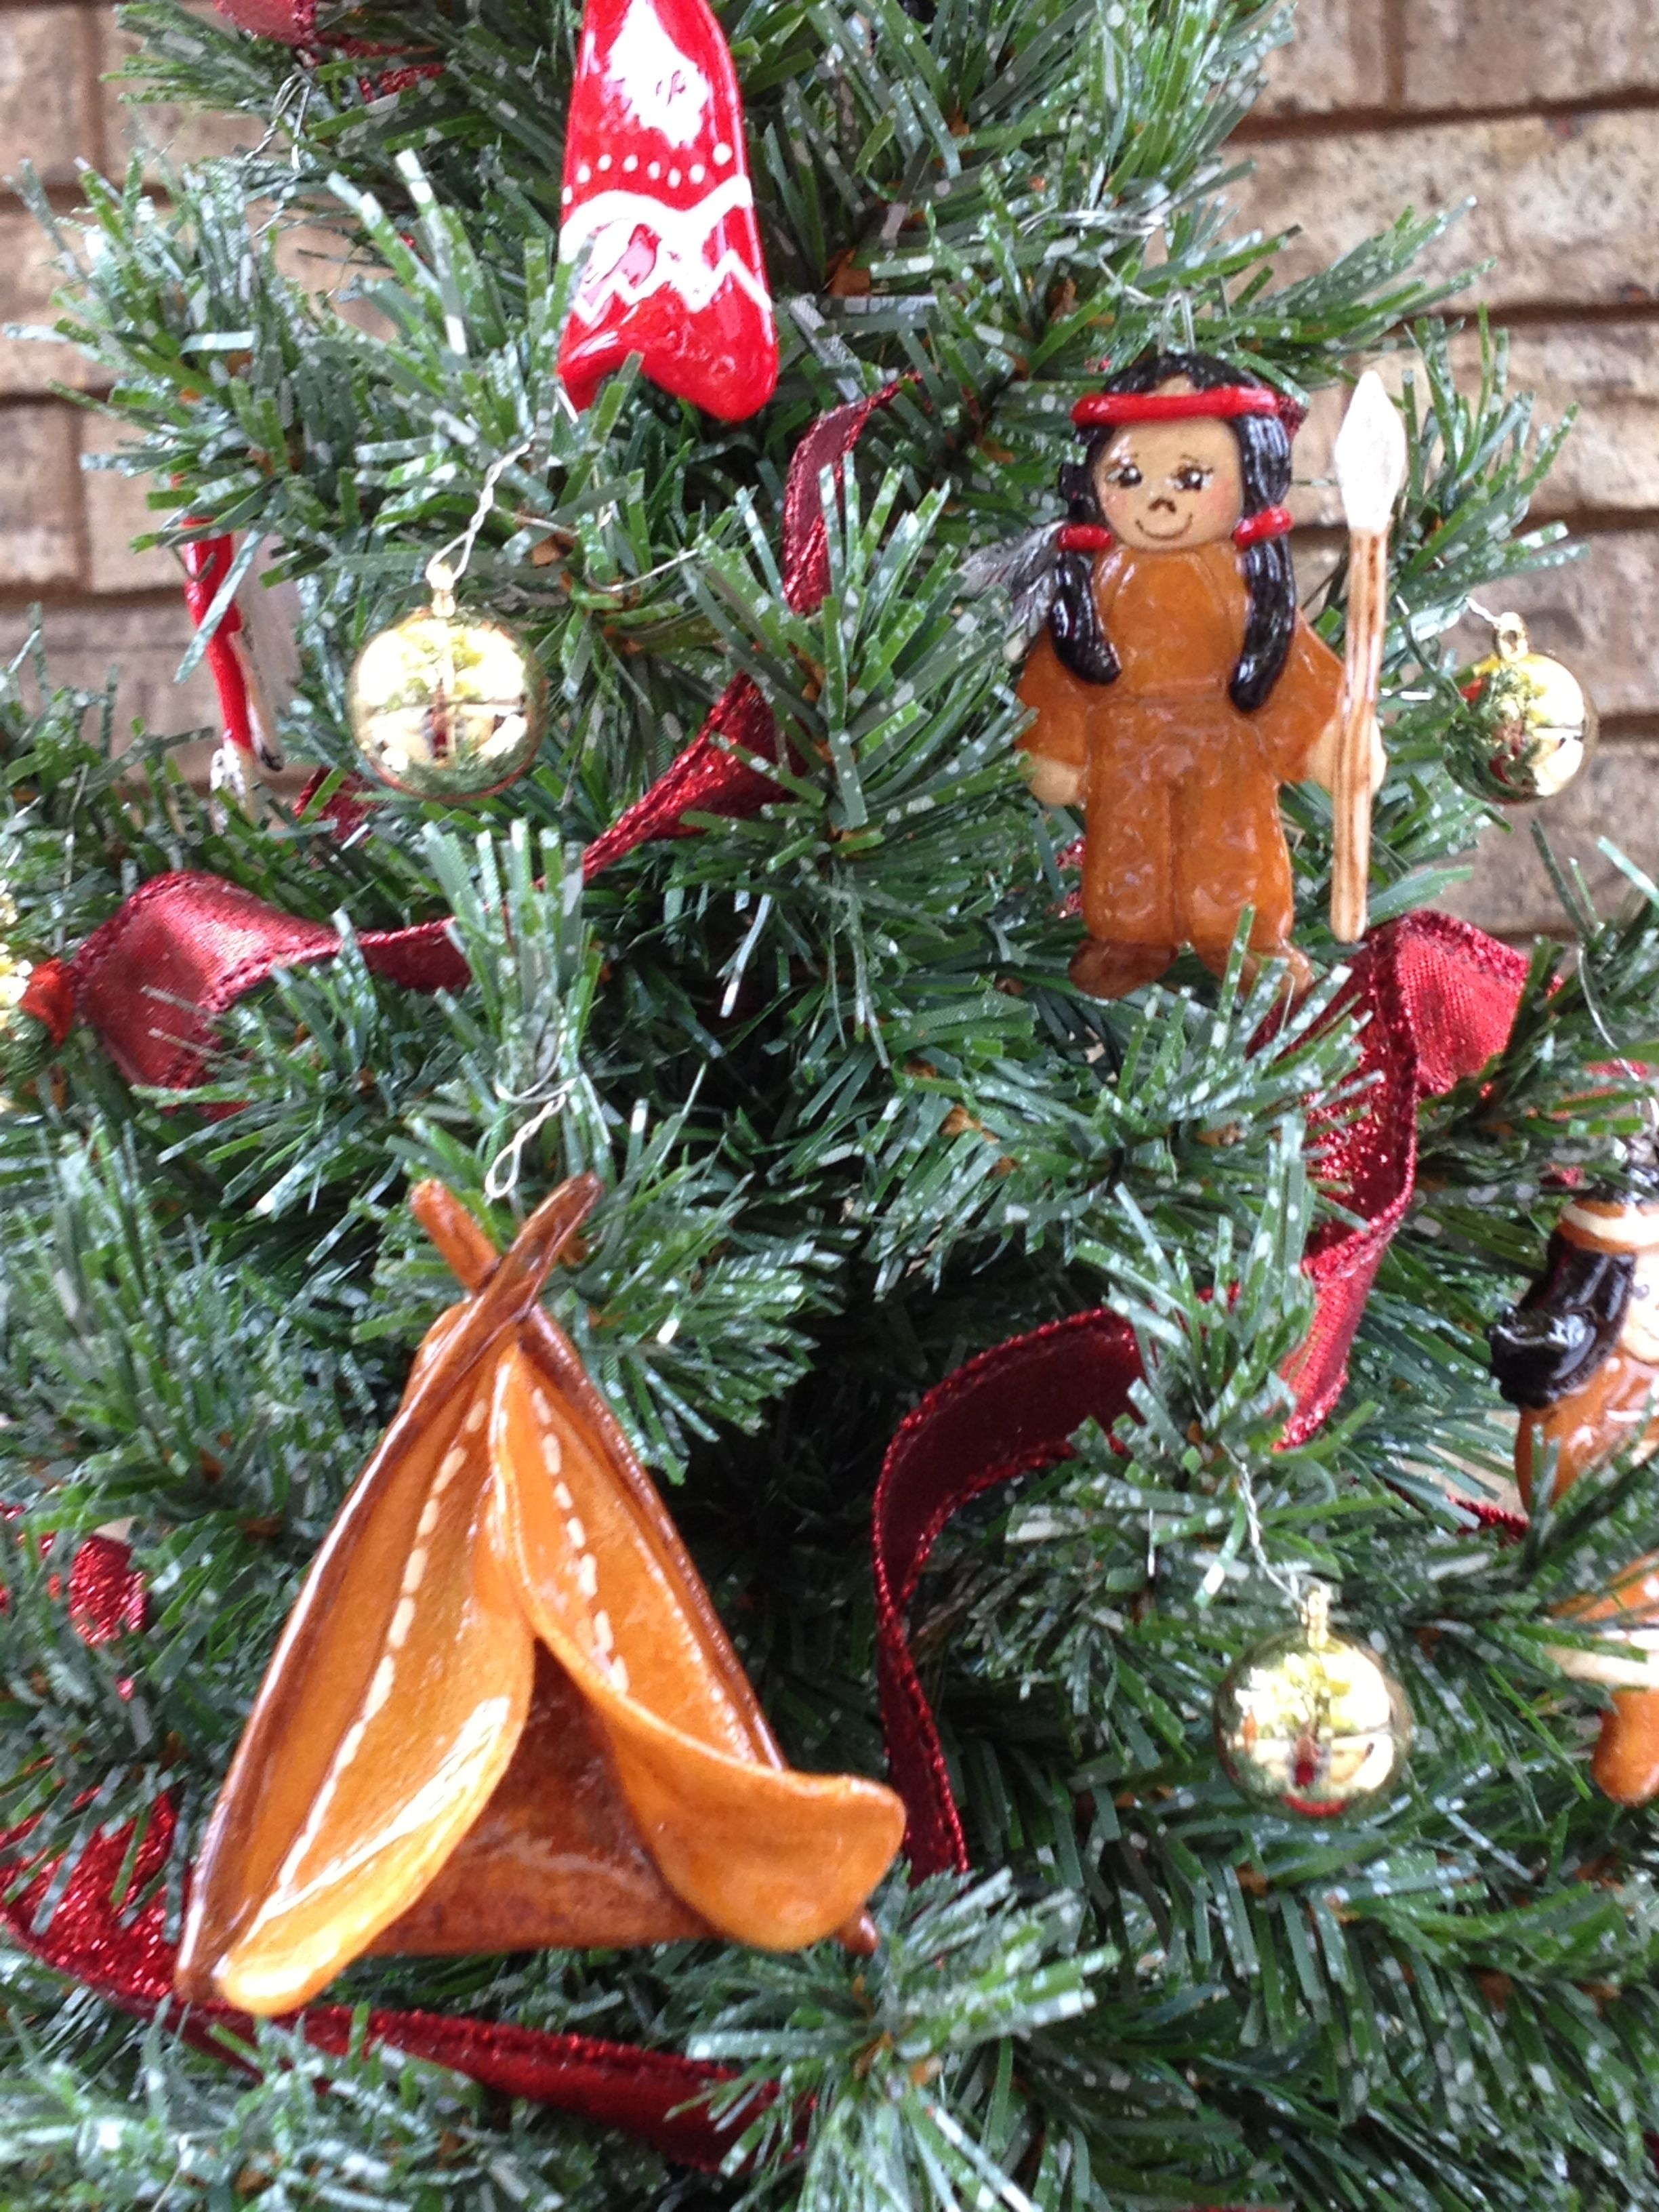 Small Native American Indian Christmas tree | DIY projects ...